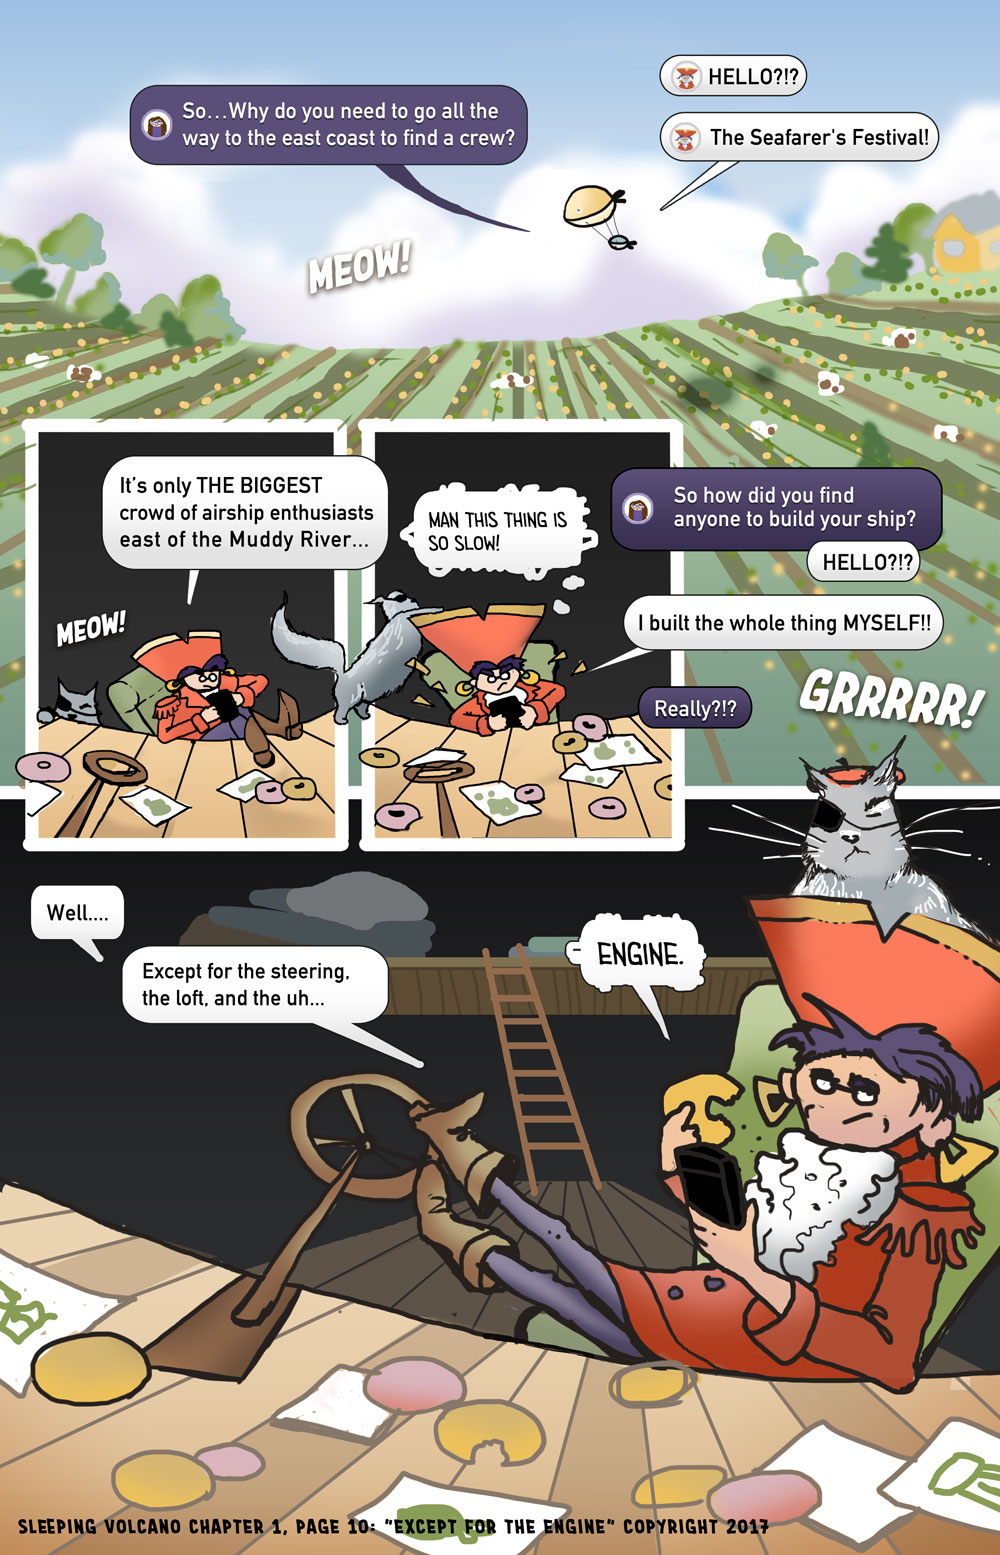 Sleeping Volcano (a web comic): In this episode, the Captain reveals why she is travelling East.